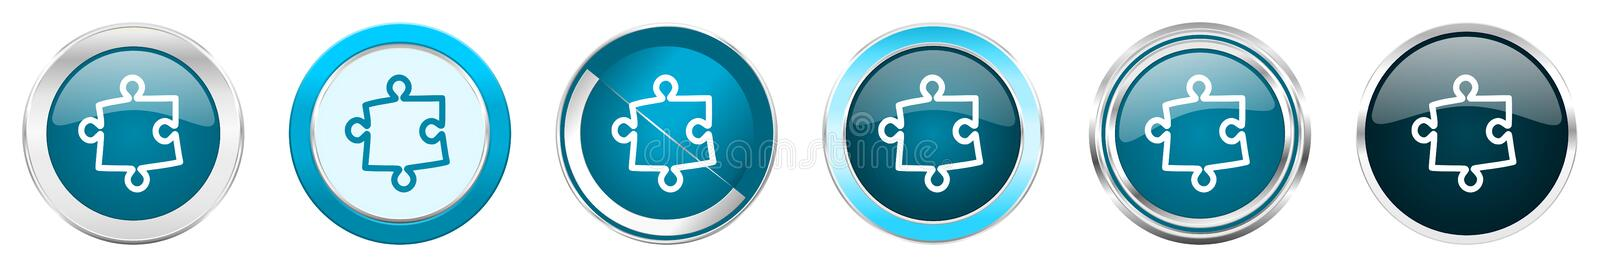 Puzzle silver metallic chrome border icons in 6 options, set of web blue round buttons isolated on white background.  royalty free illustration